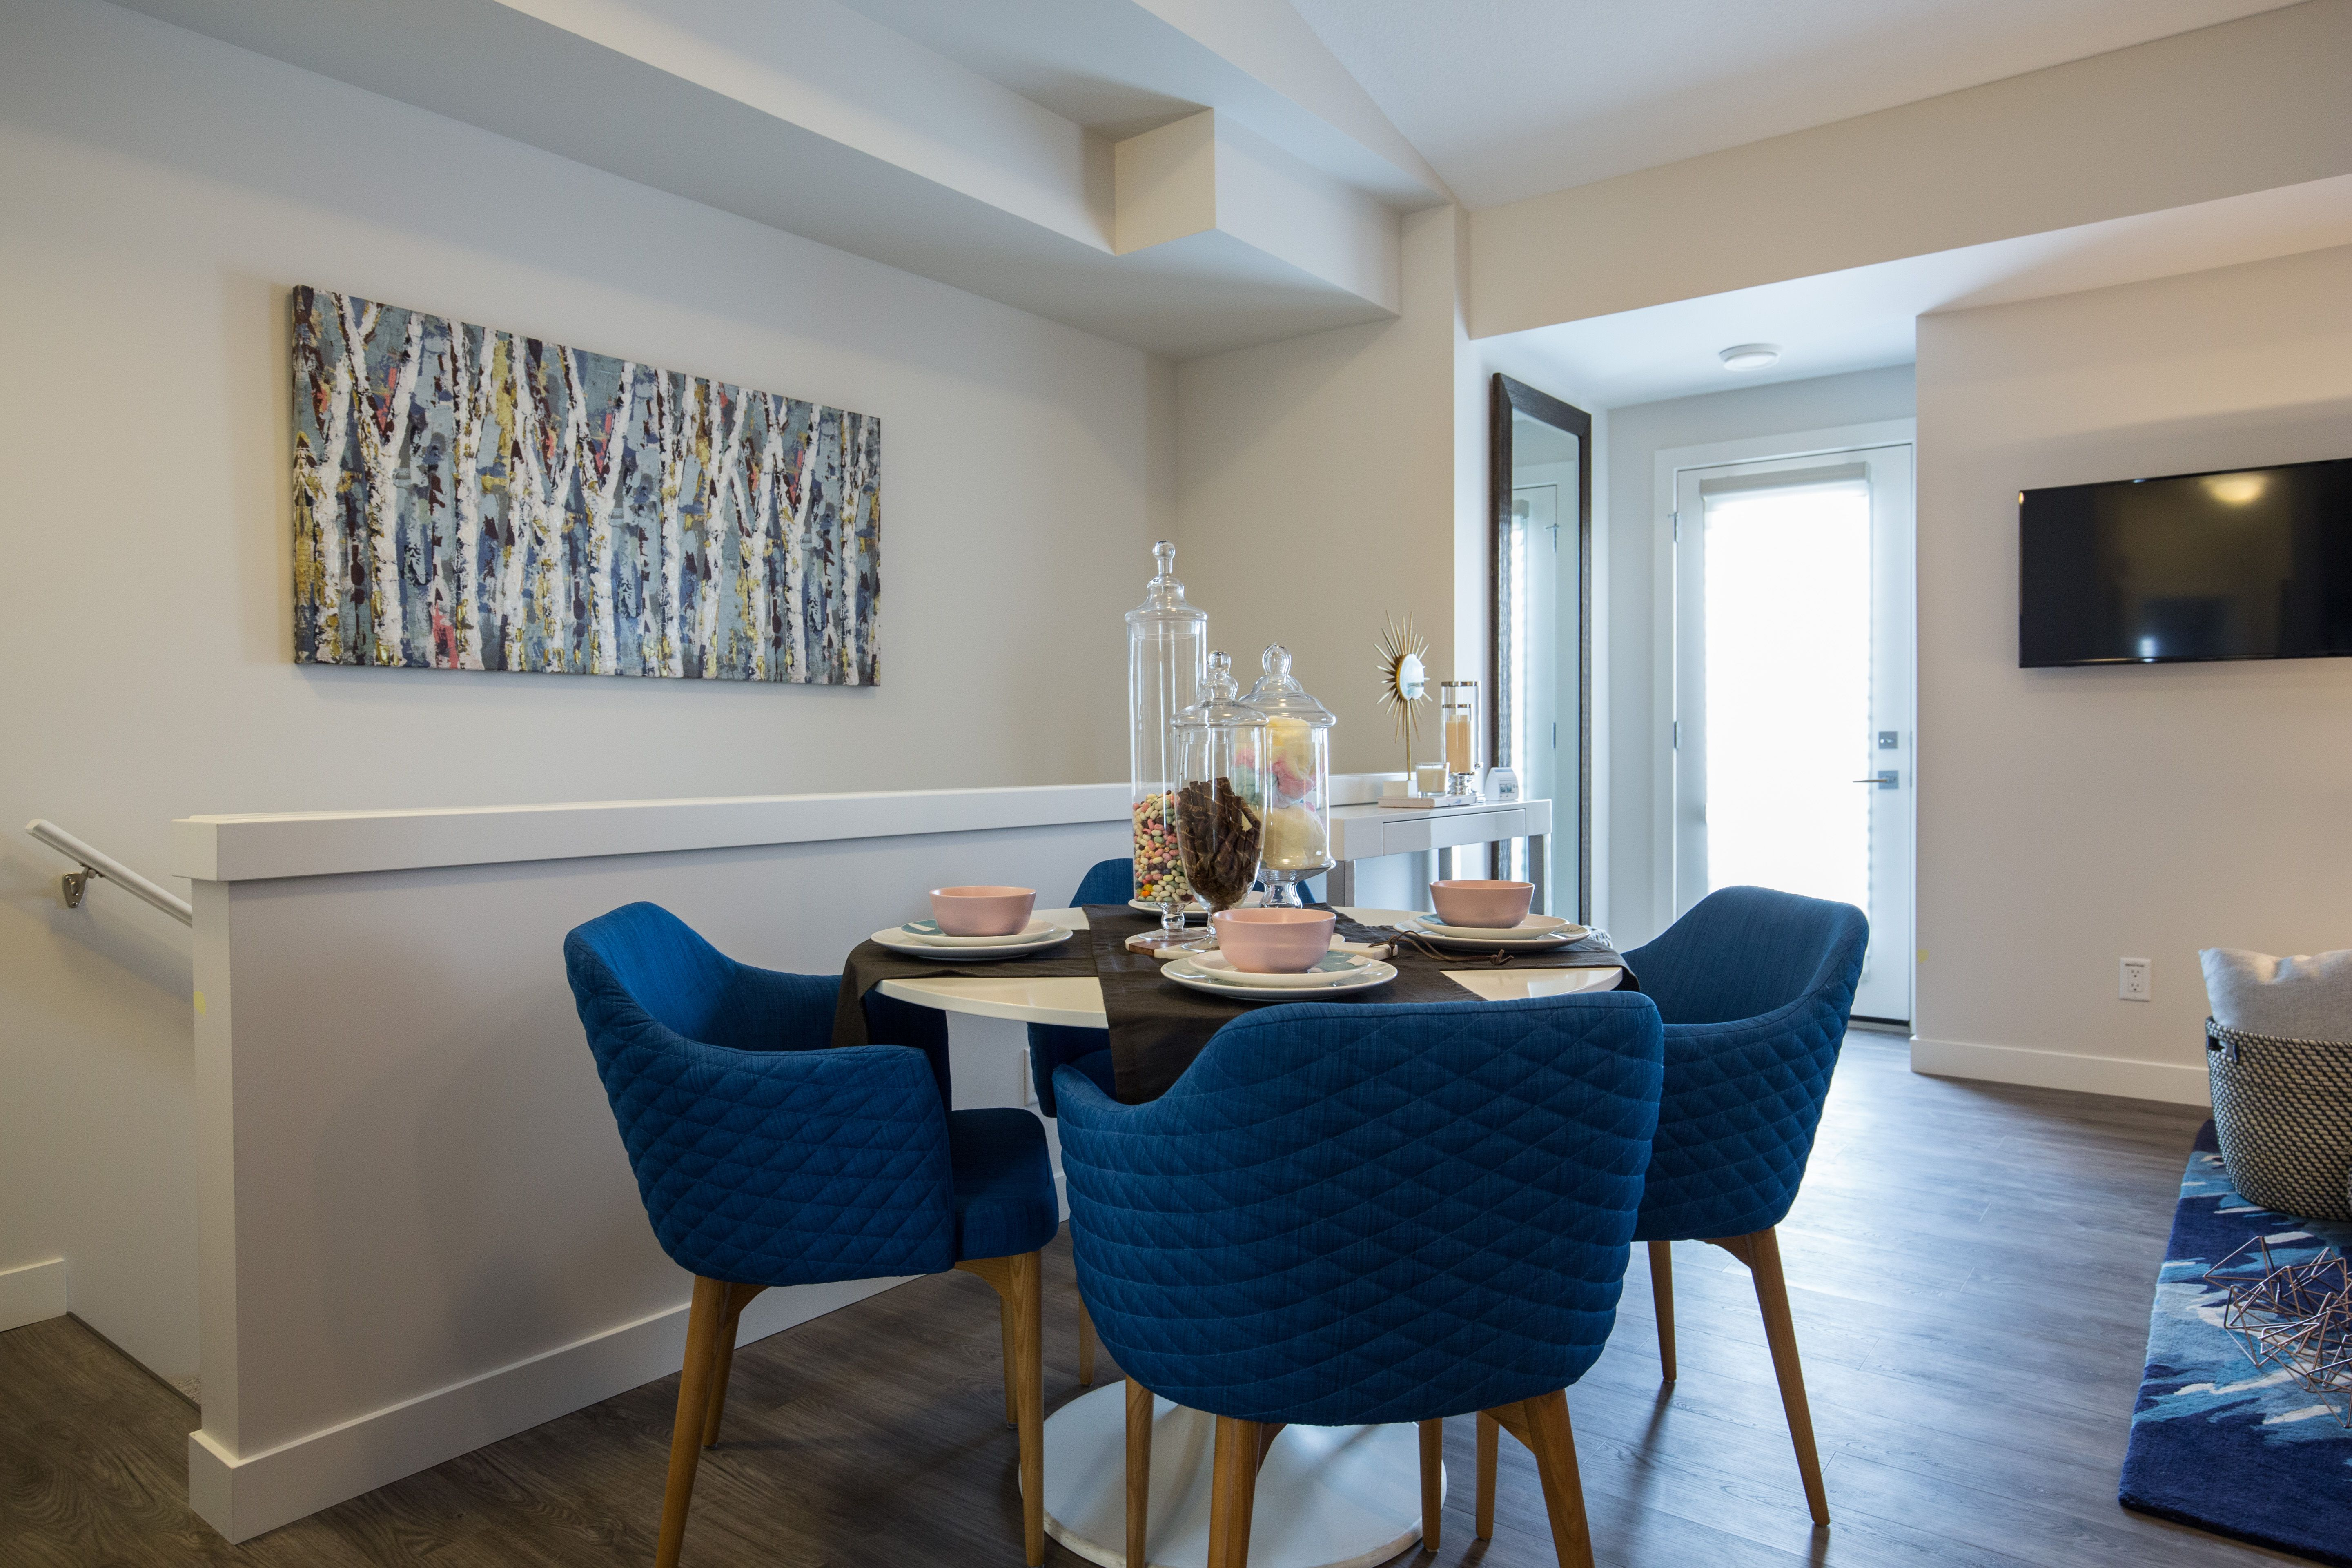 Projects rochelle cote the dining room from the ruby showhome the dining room from the ruby showhome dzzzfo